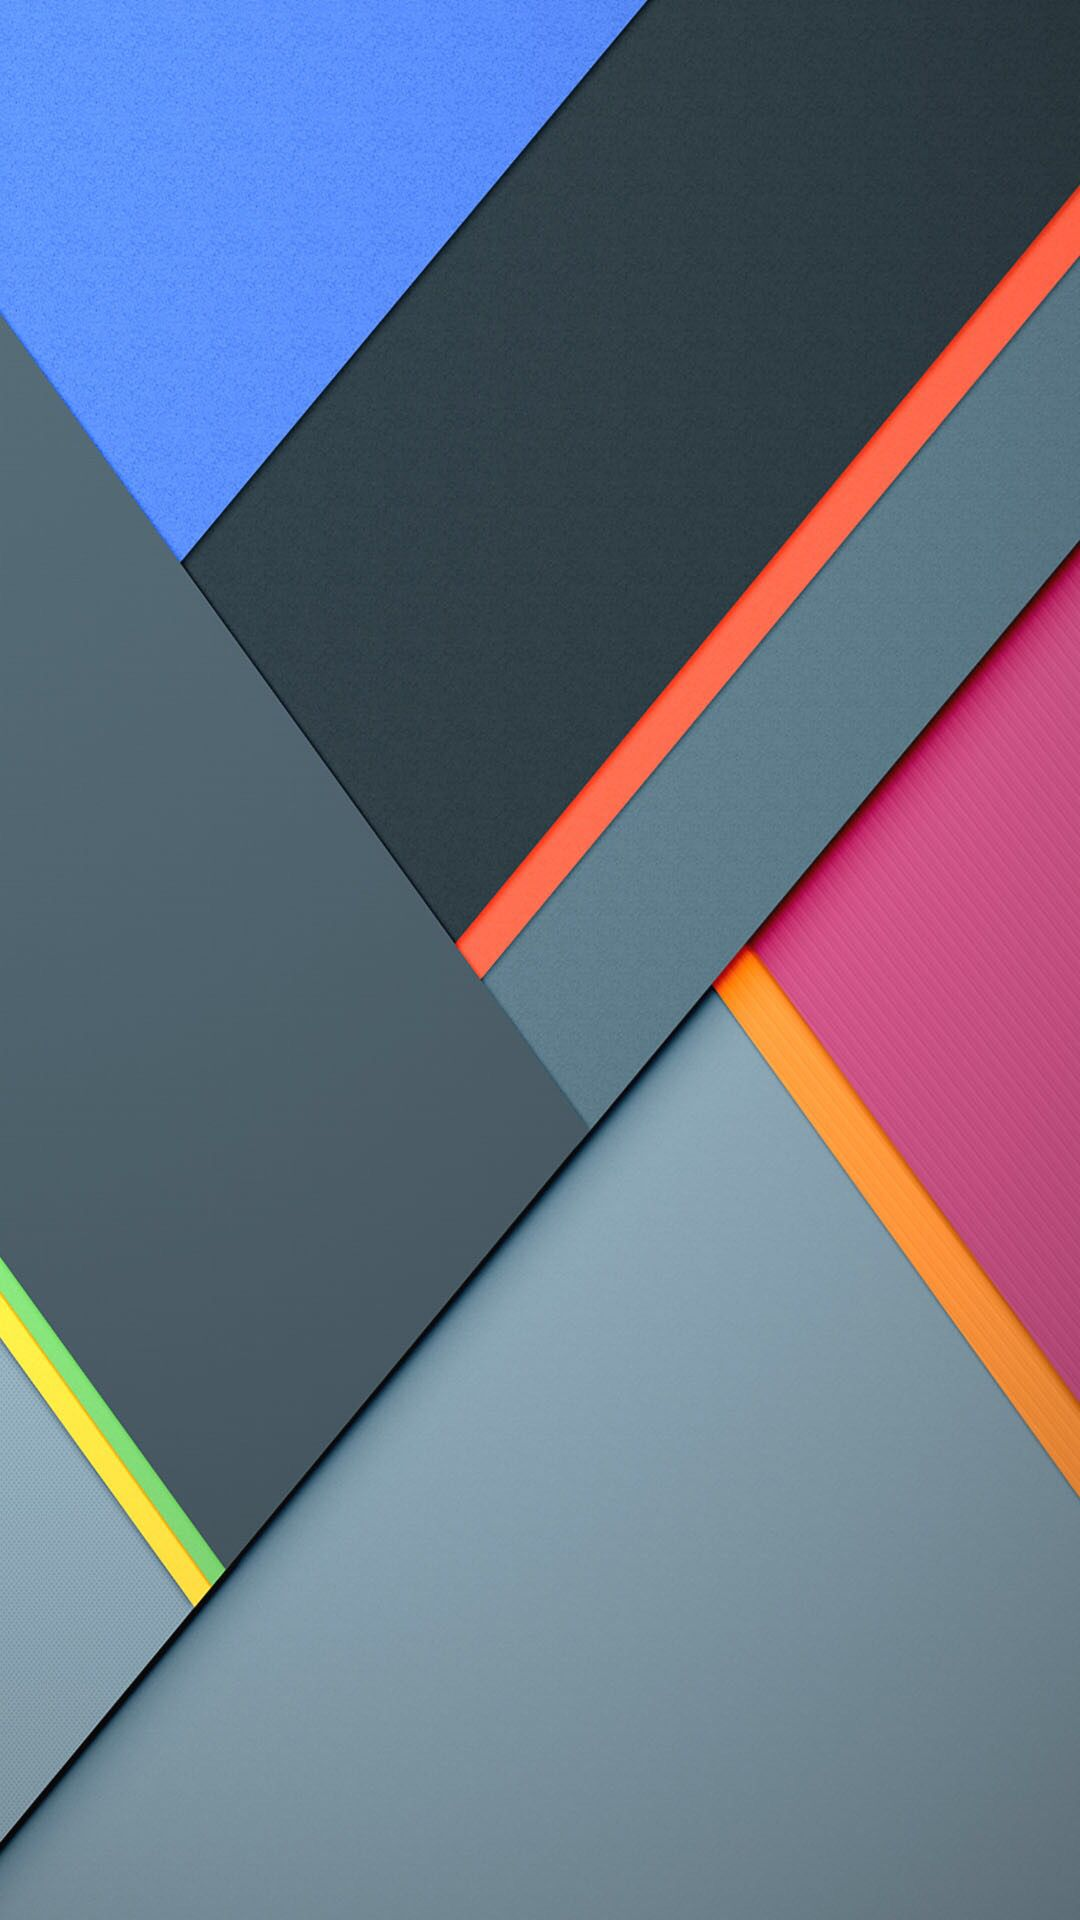 Colorful Abstract Geometric Wallpaper Geometric Wallpaper Iphone Abstract Iphone Wallpaper Geometric